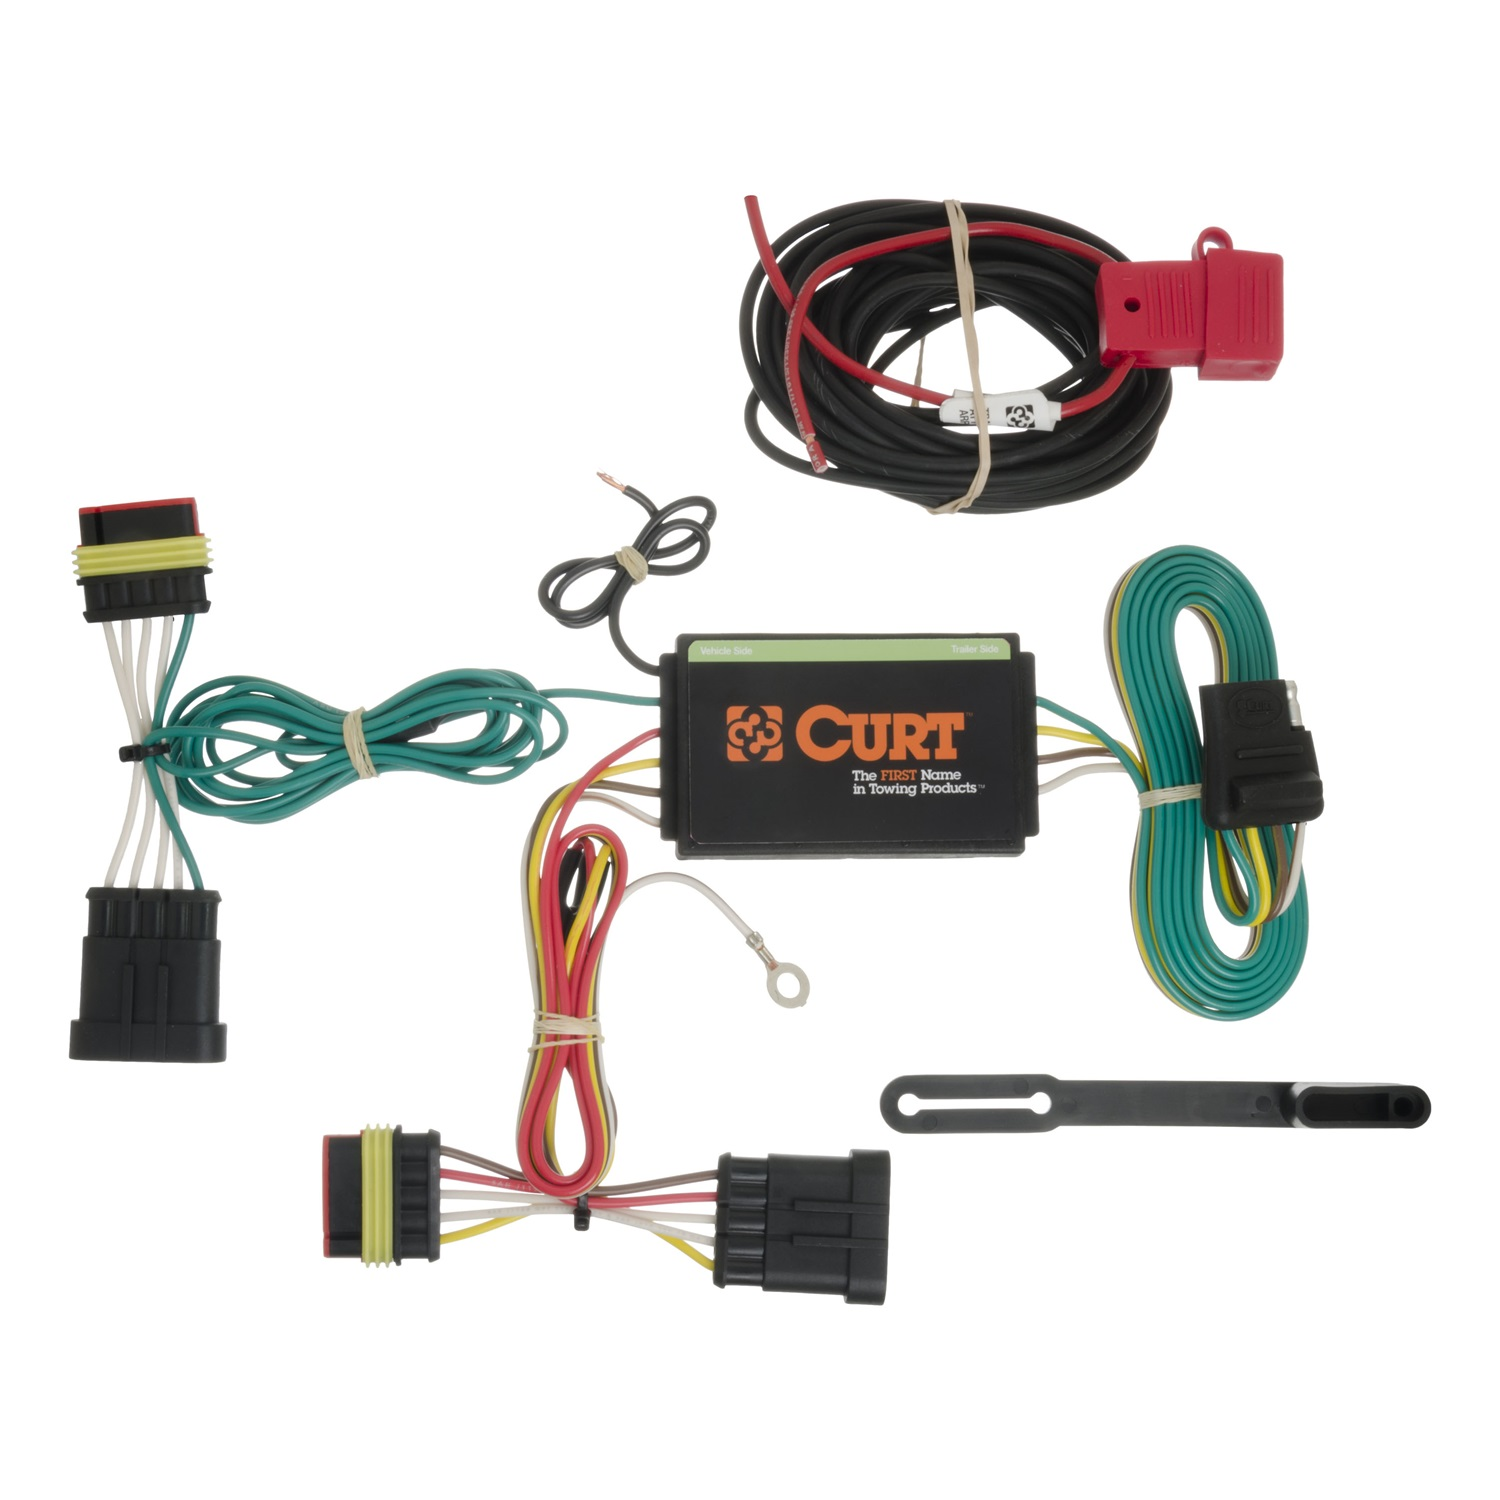 CURT T-Connector, 3 wire system, powered converter included